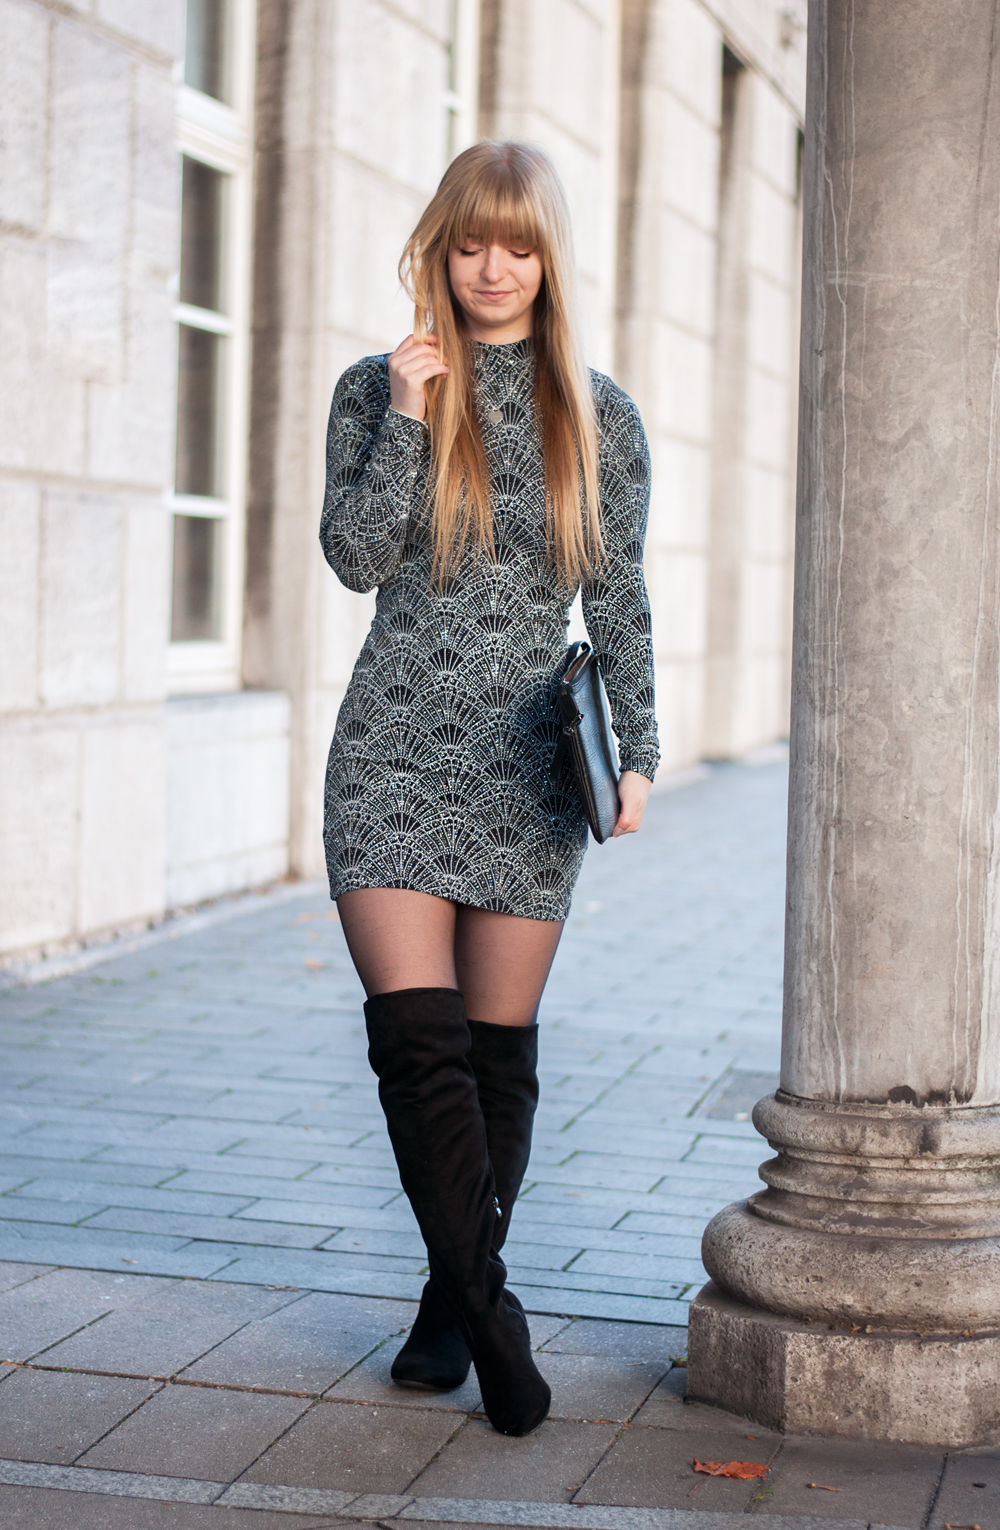 bodycon-dress-christmas-outfit-xmas-look-inspiration-winter-backless-sequin-glitter-sparke-black-overknees-modeblog-duisburg-nrw-1